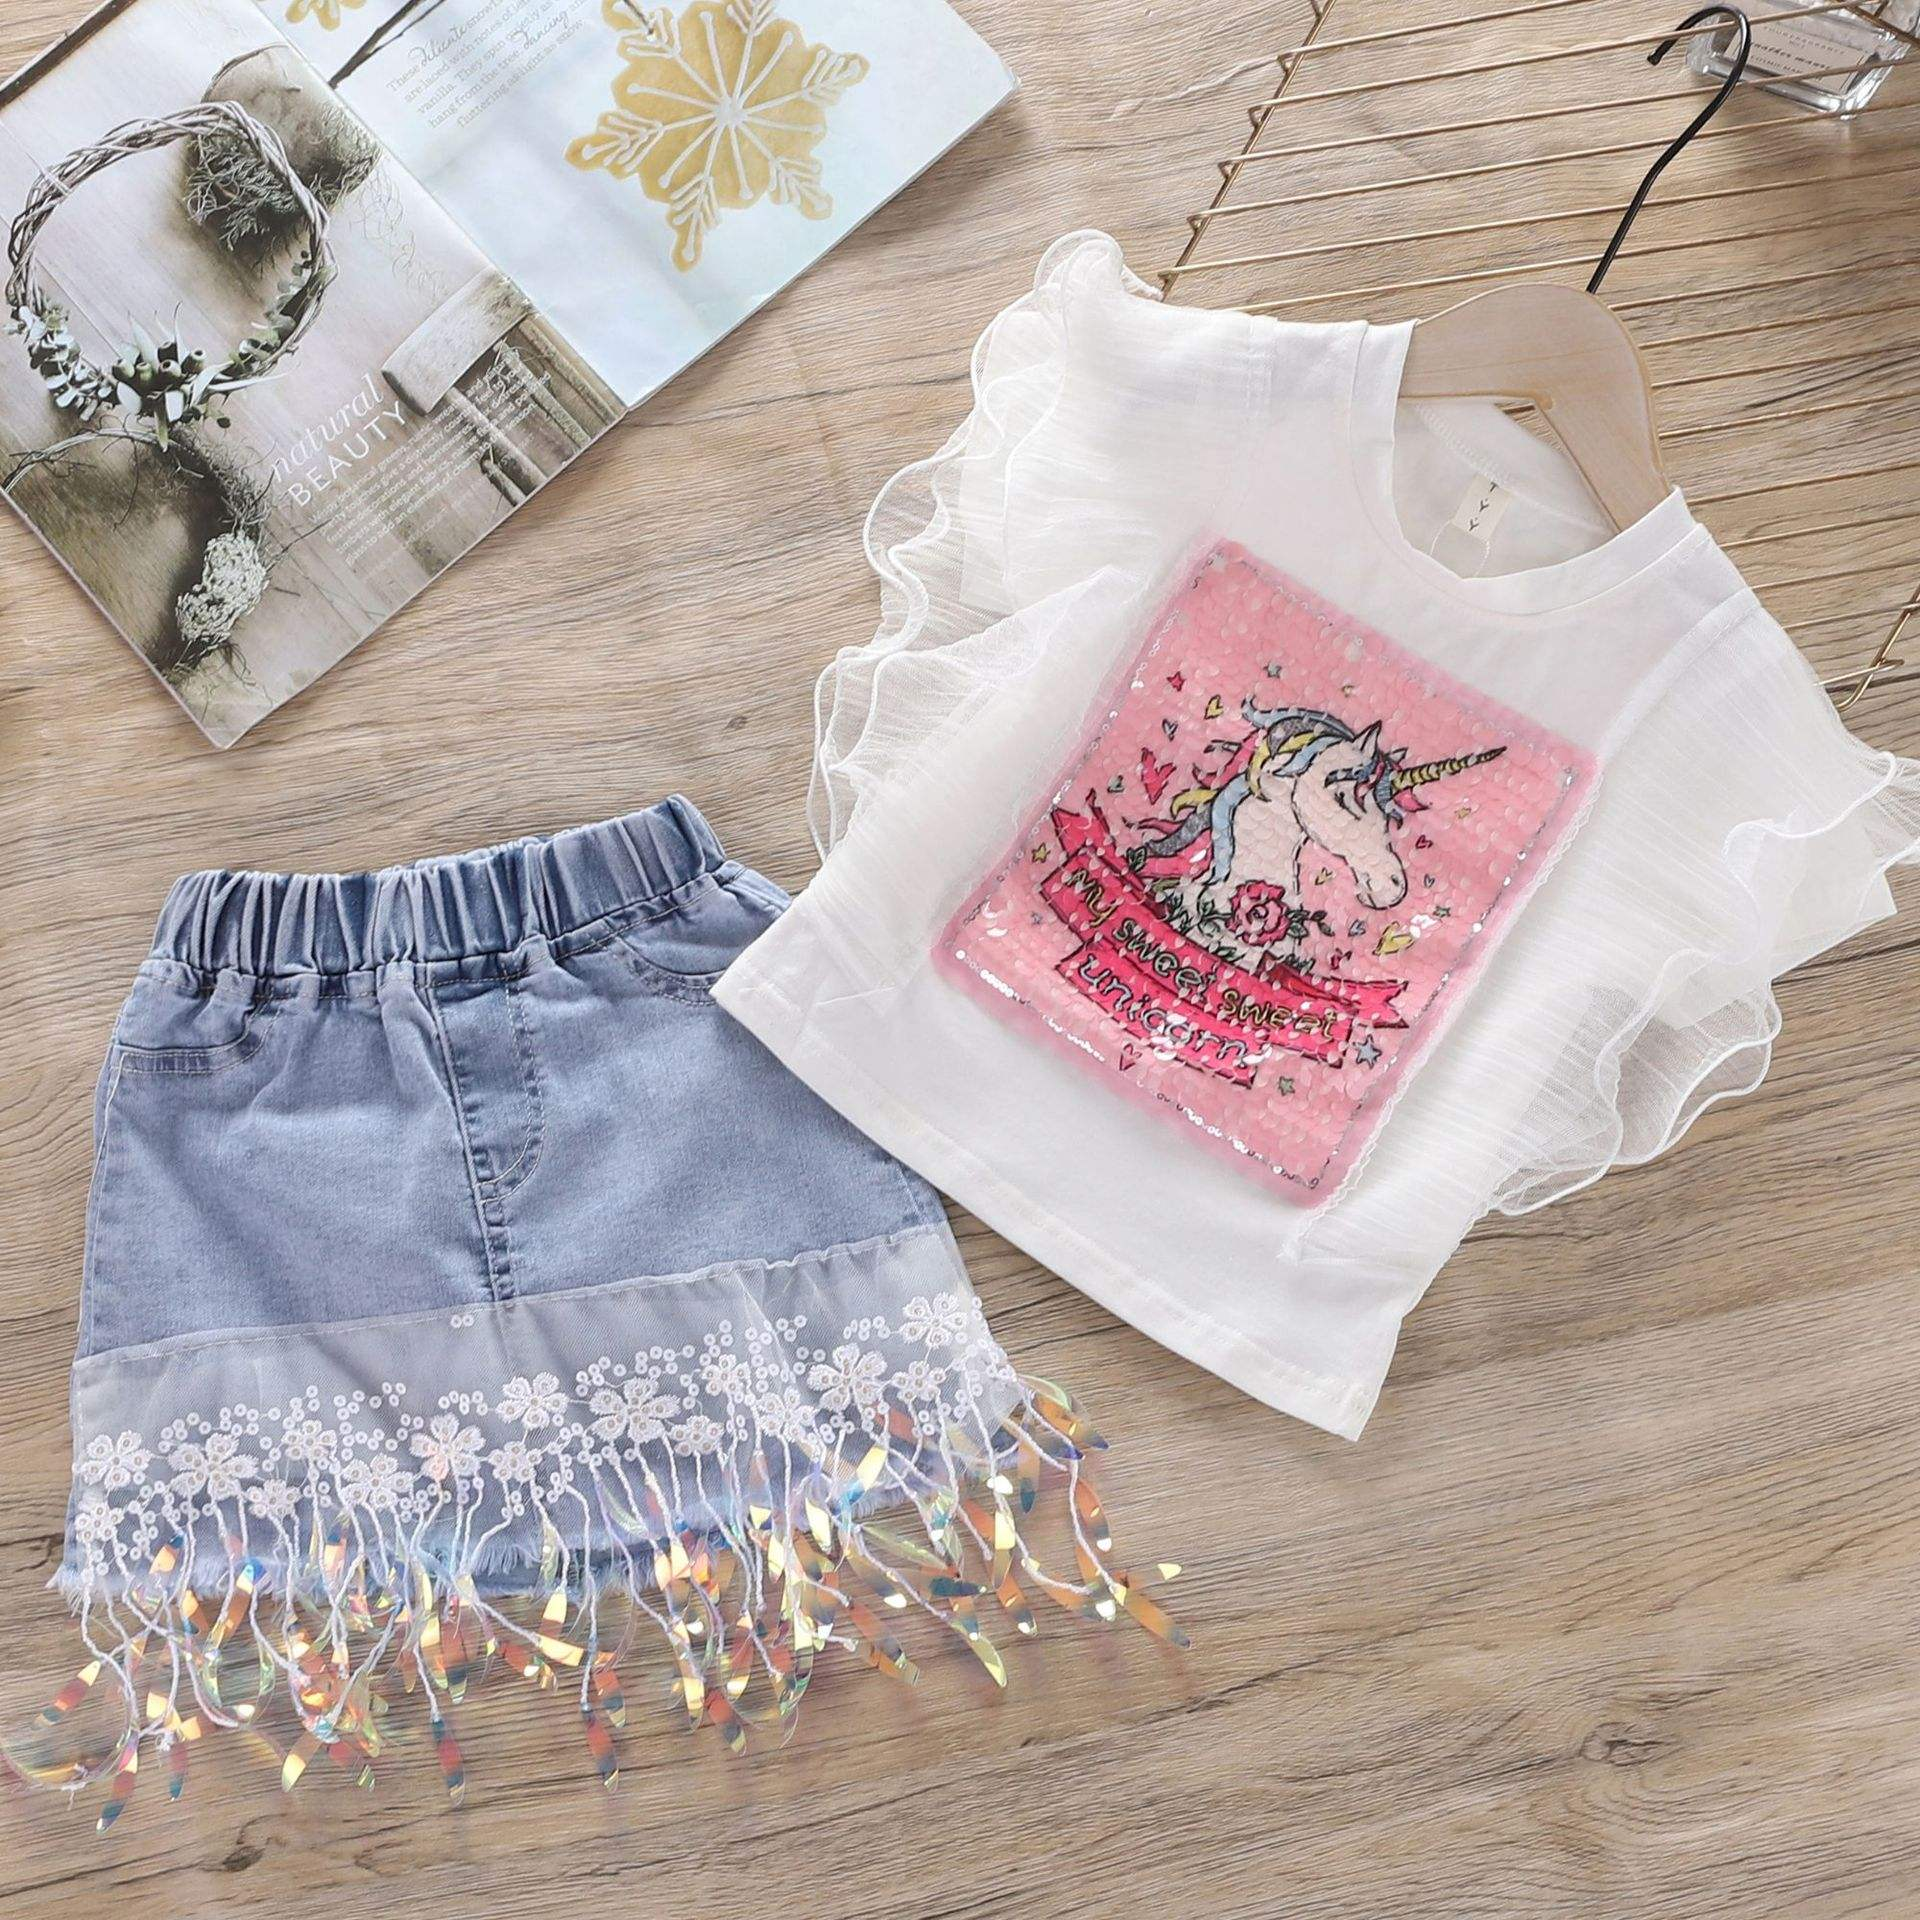 2021 Summer Clothing for girls fashionable sets children's suit cartoon print lace top + denim sequin skirt sets